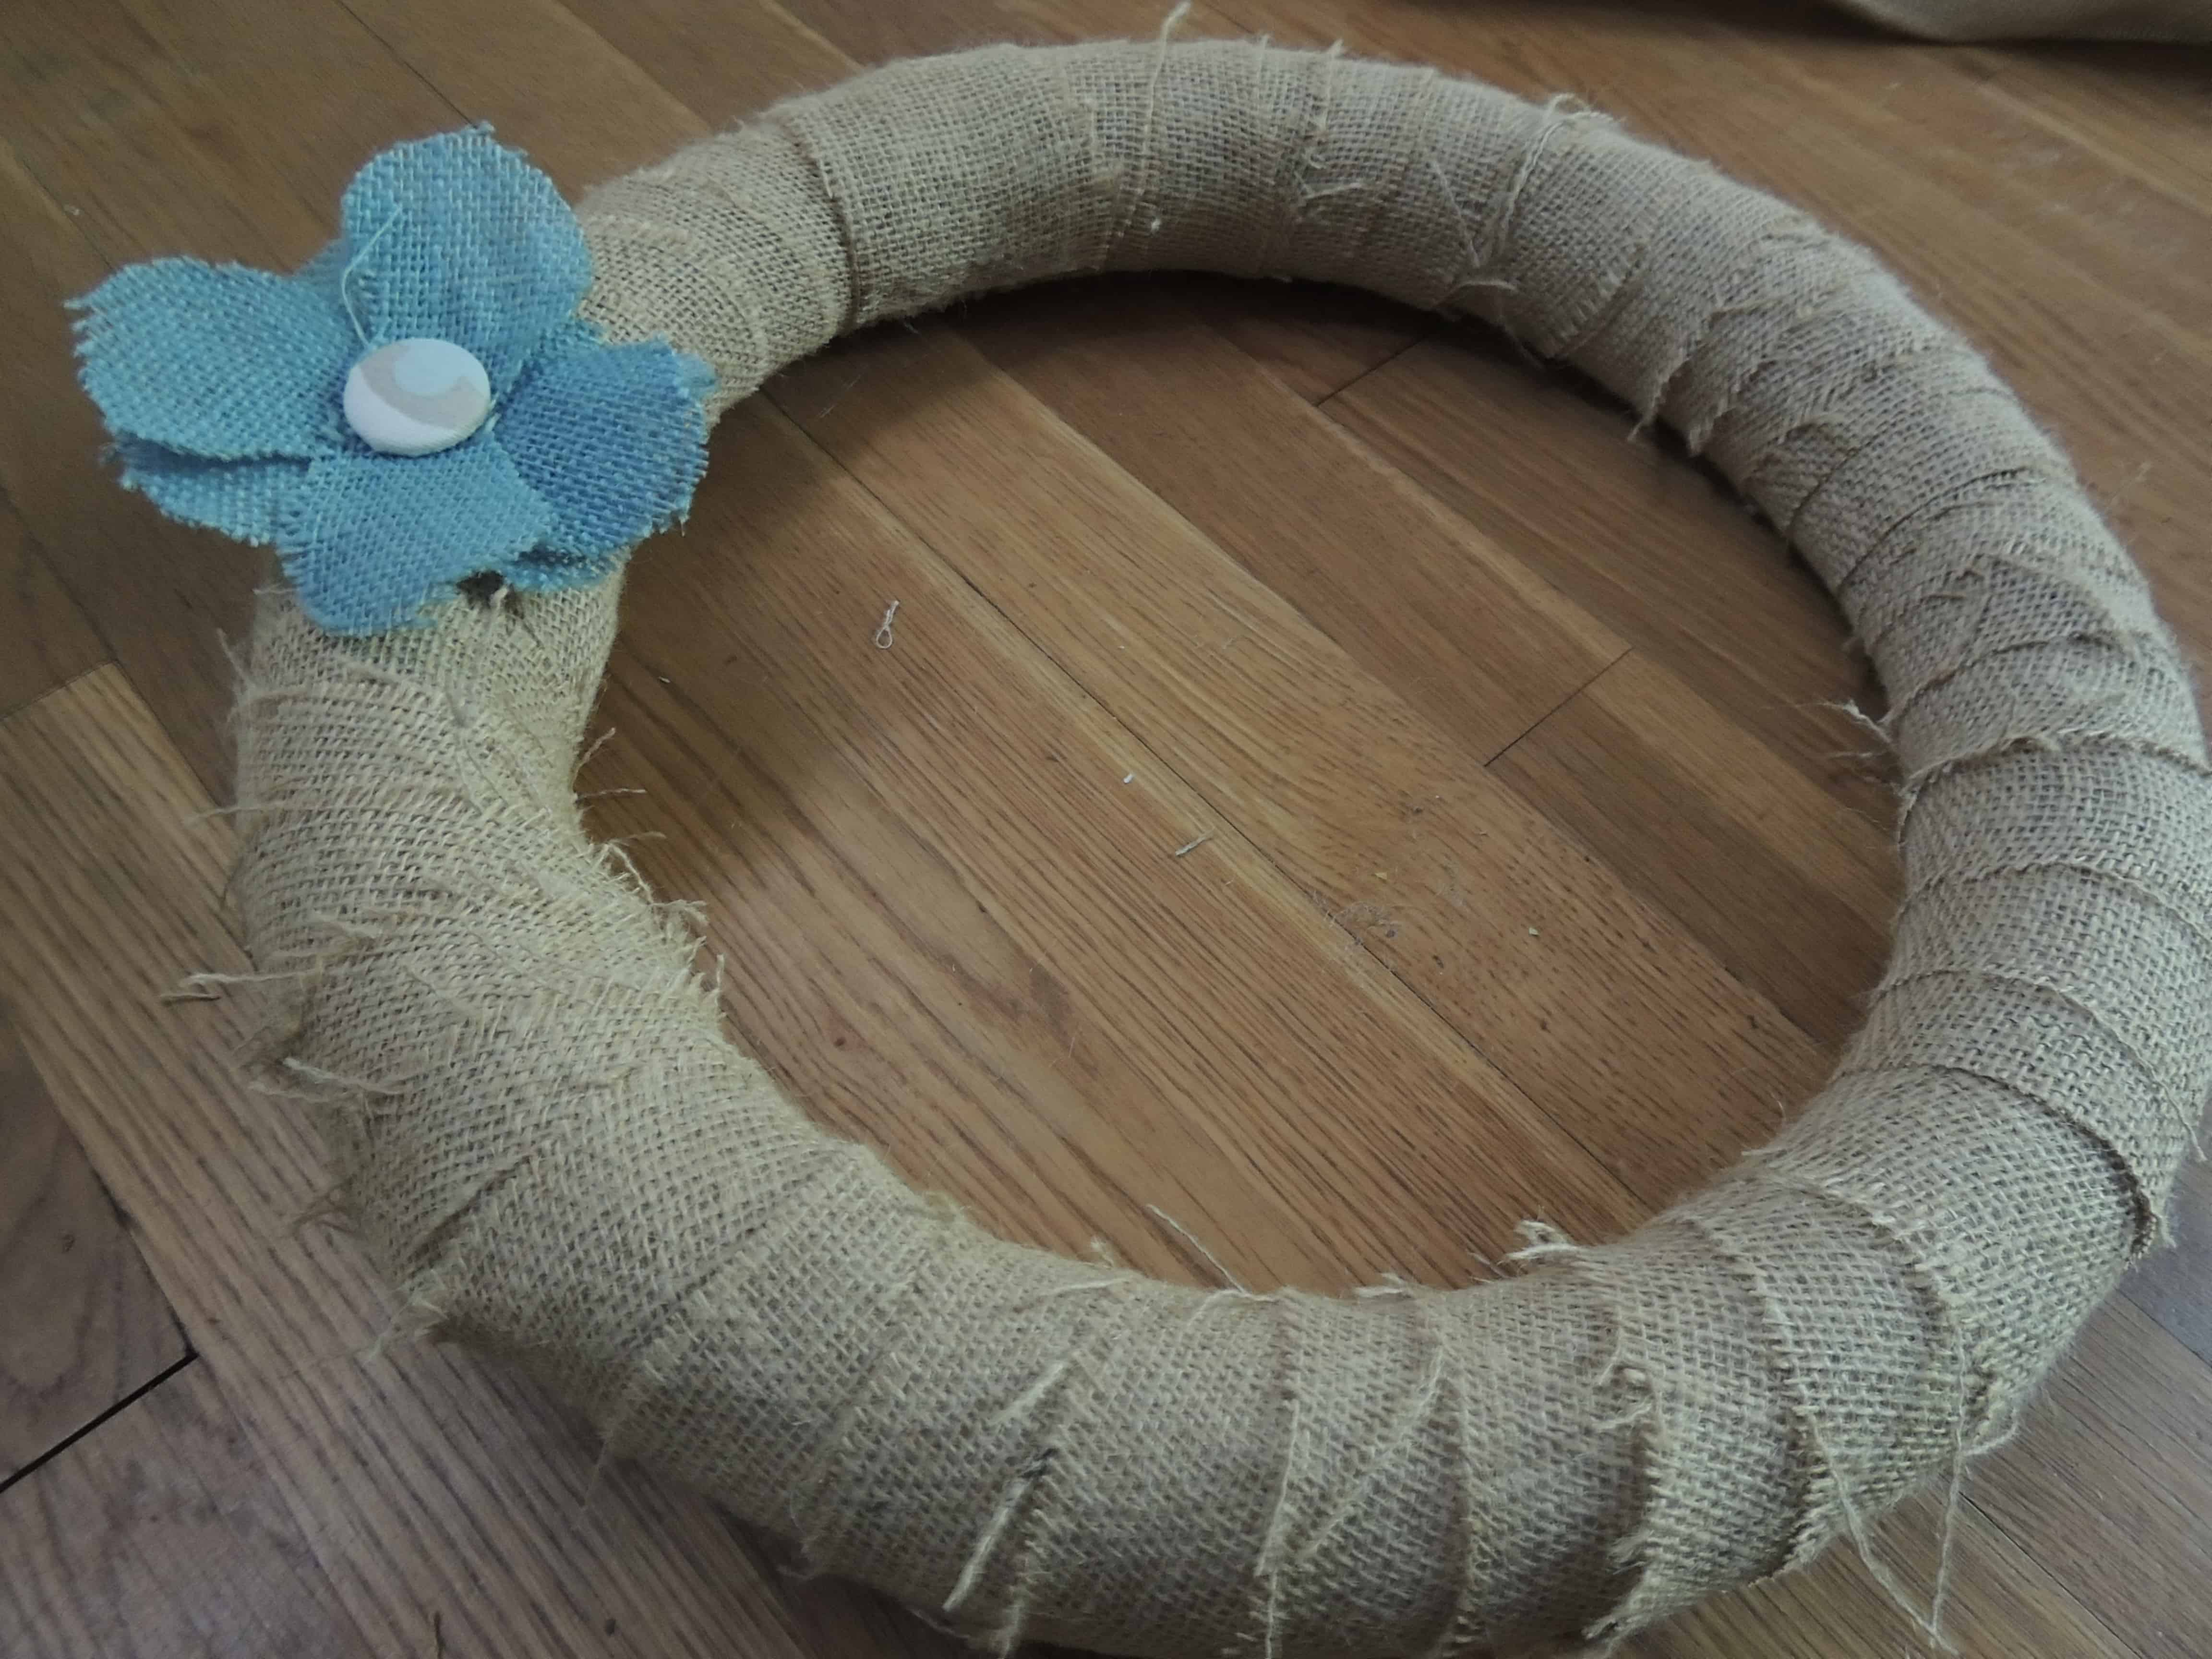 Attach the burlap flowers to the wreath with a few drops of hot glue